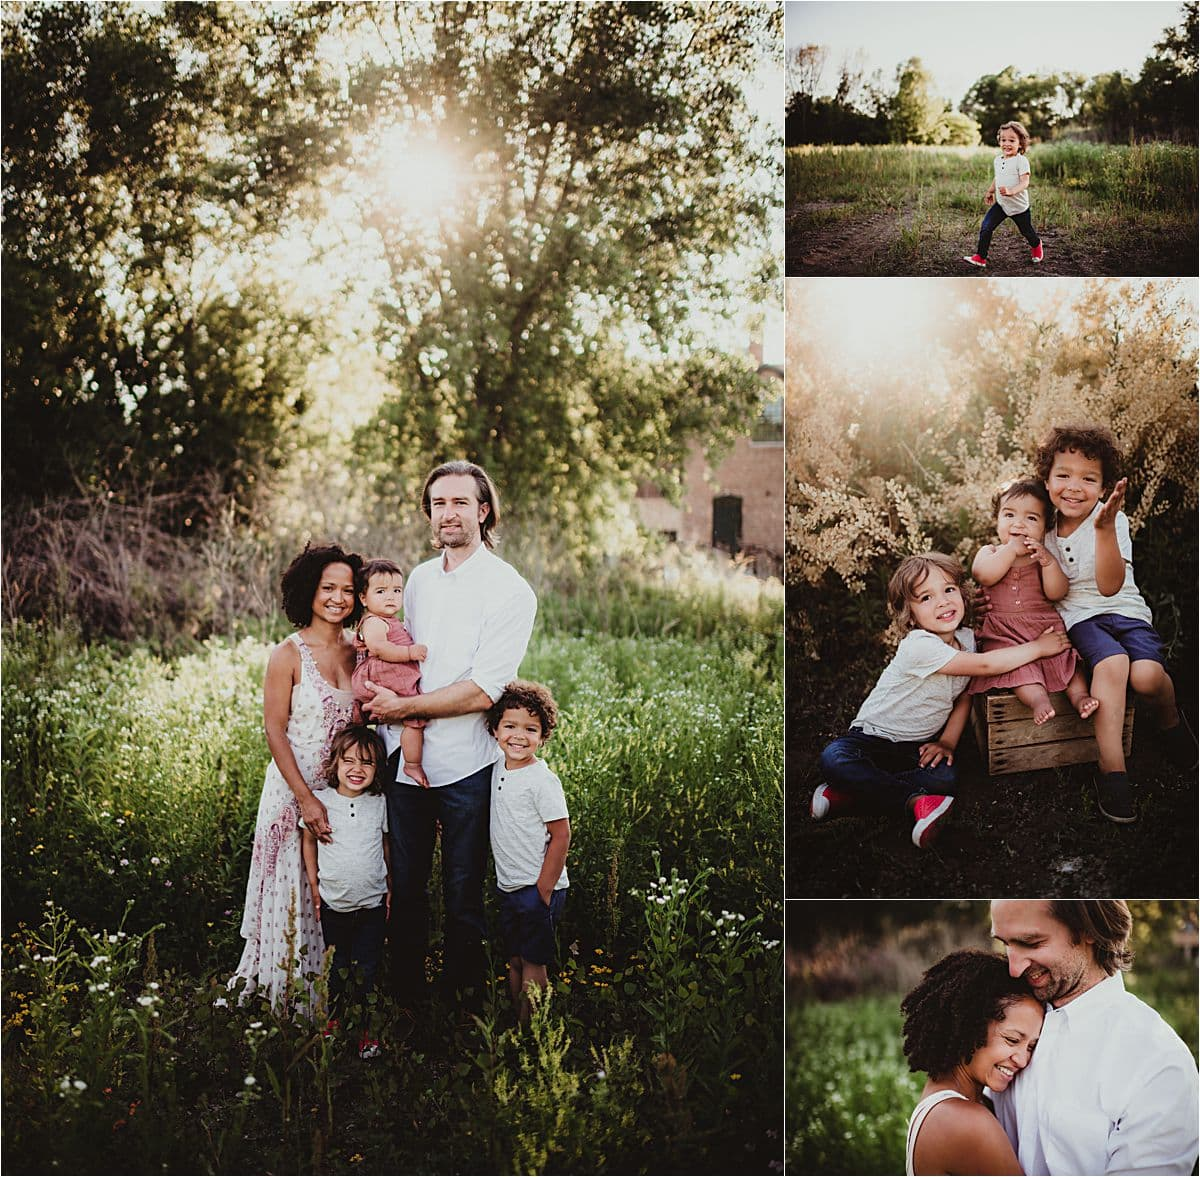 Urban Flower Field Session Collage Family at Sunset